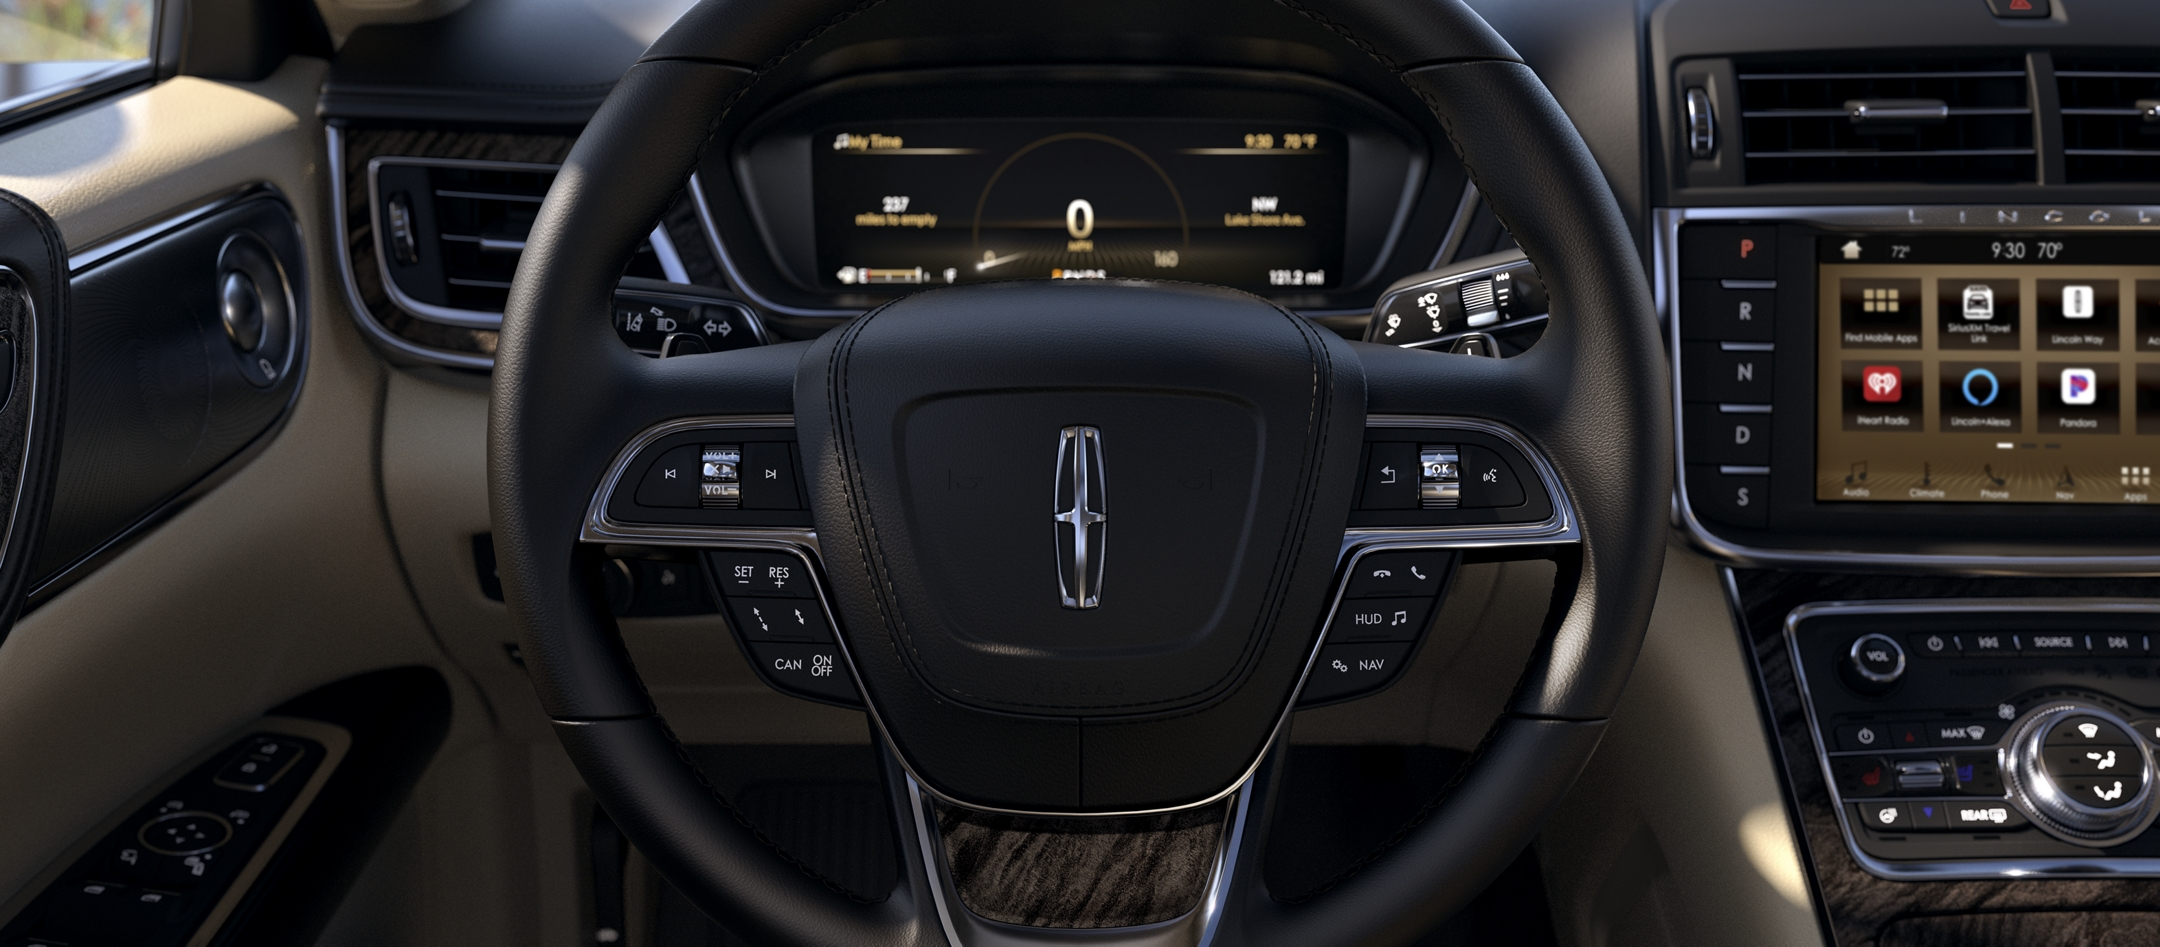 The area around the steering wheel shows how many controls are at the driver's fingertips